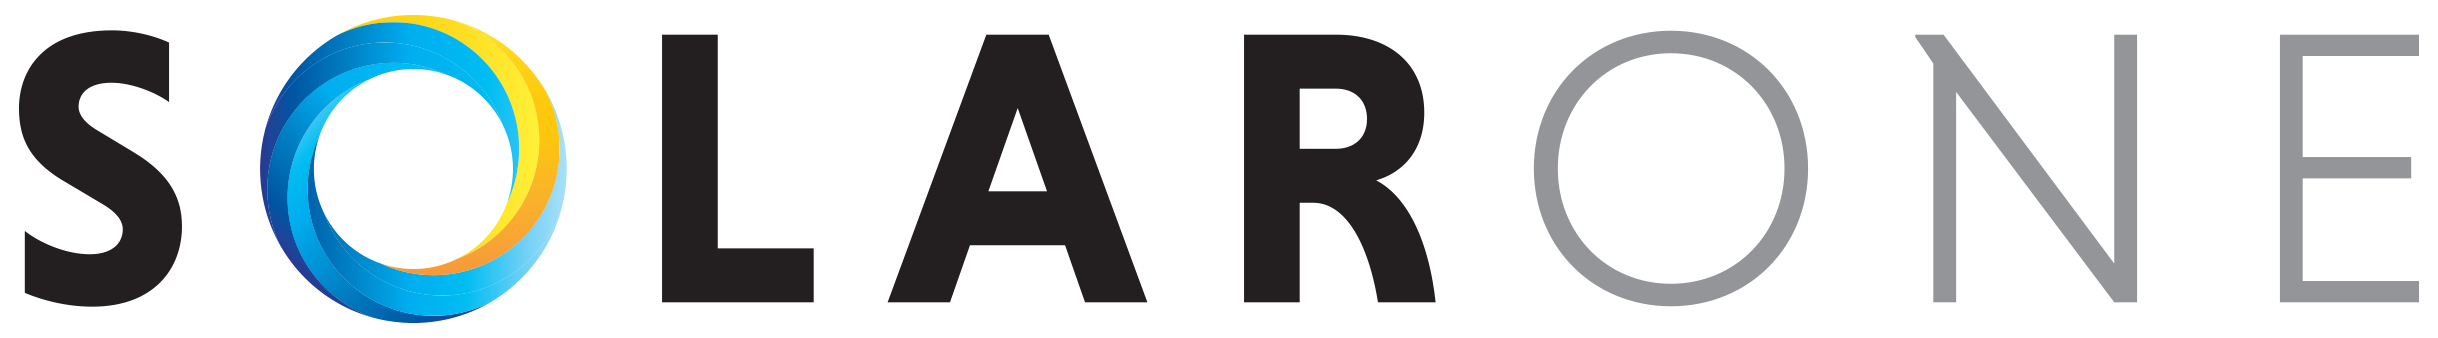 Solar-One-Logo.png